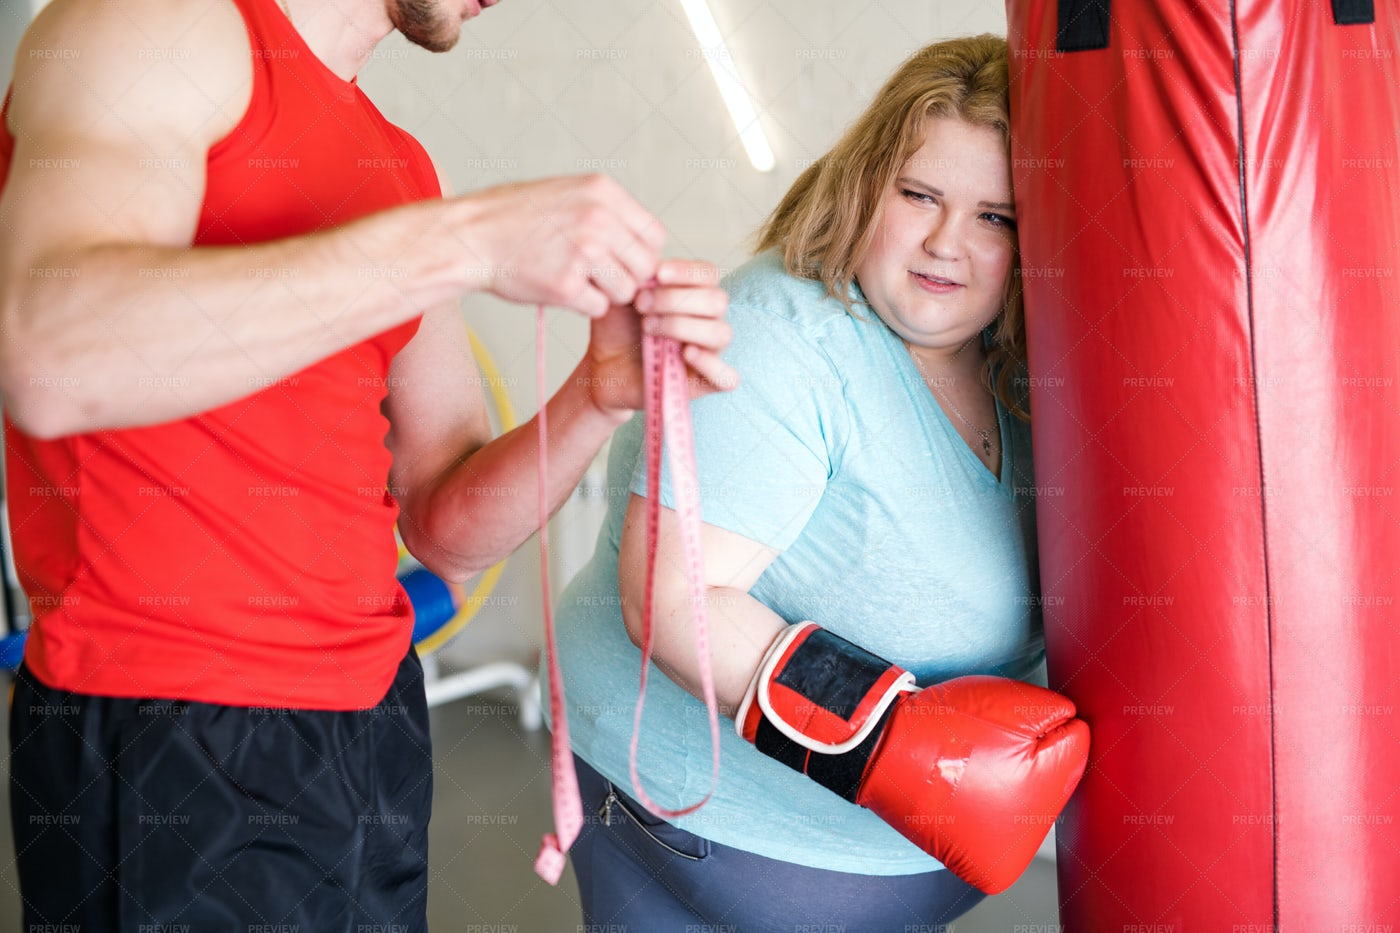 Obese Woman Dreading After Training...: Stock Photos